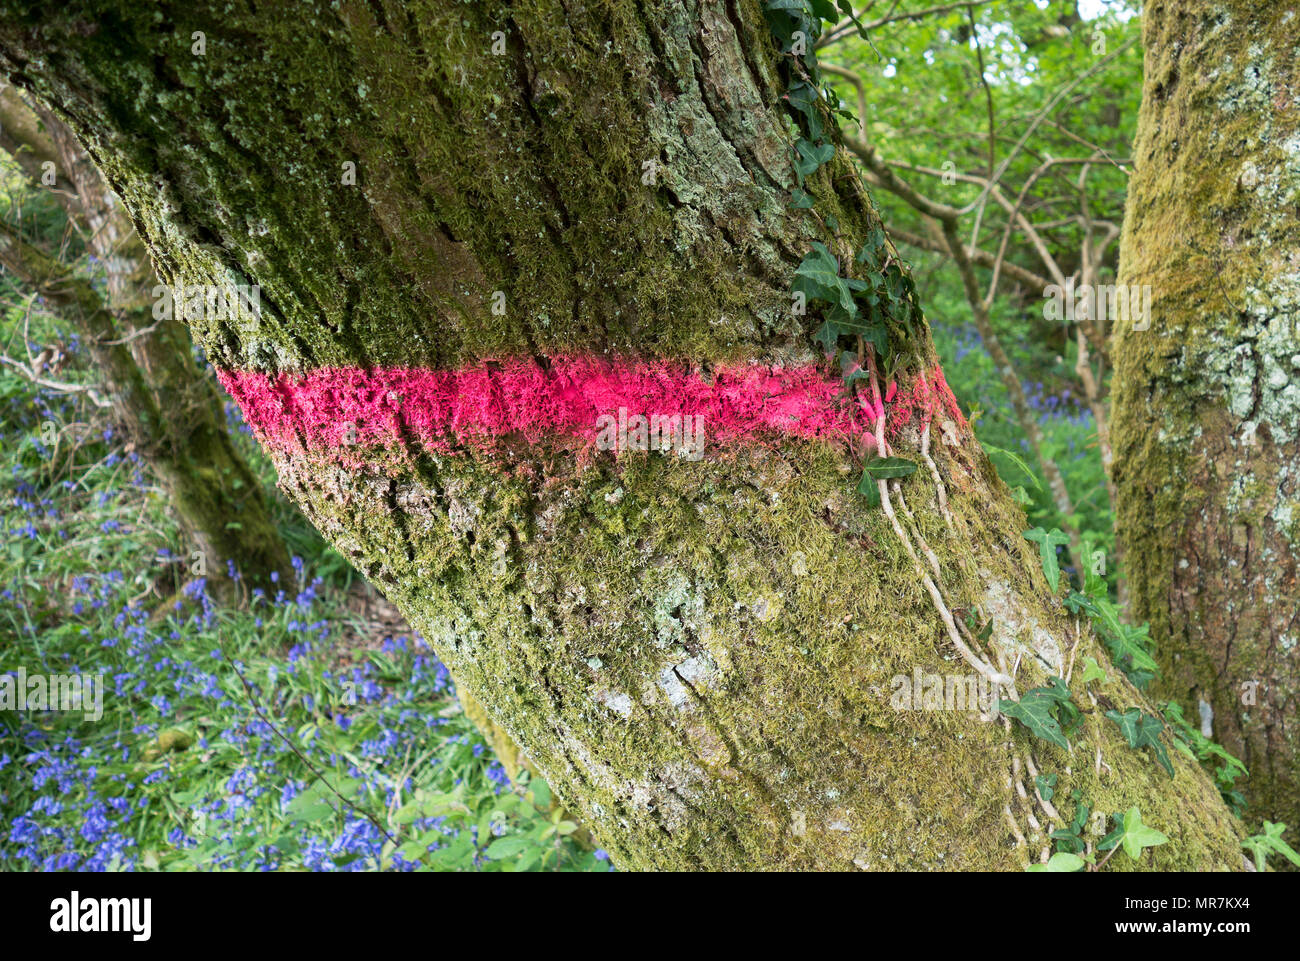 oak tree marked for felling coppicing in unity woods, cornwall, england, britain, uk. - Stock Image